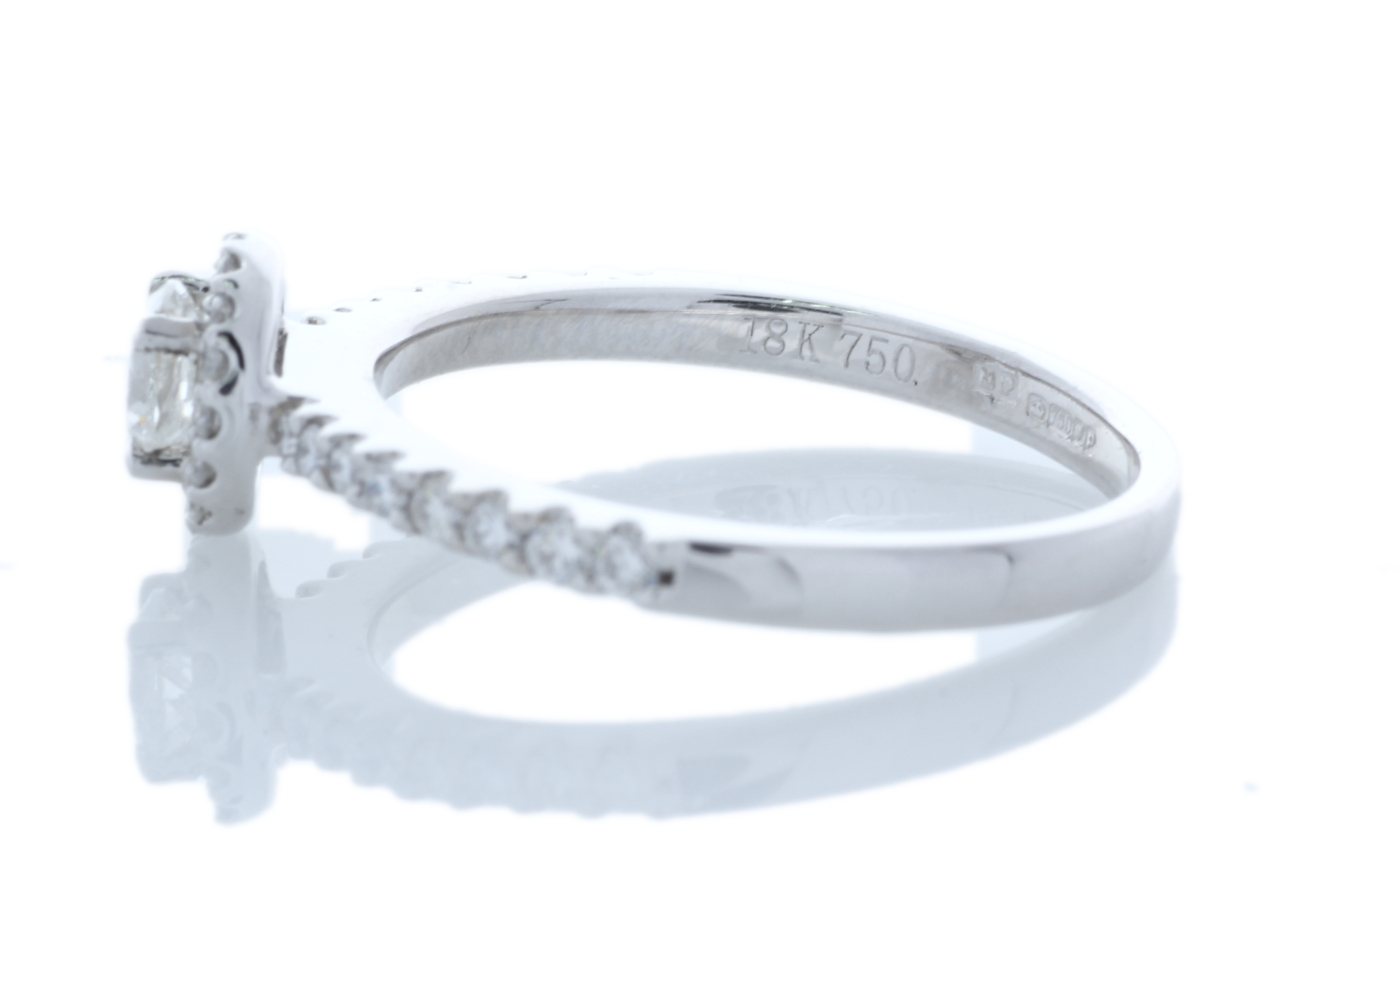 18ct White Gold Halo Set Ring 0.63 Carats - Image 2 of 5